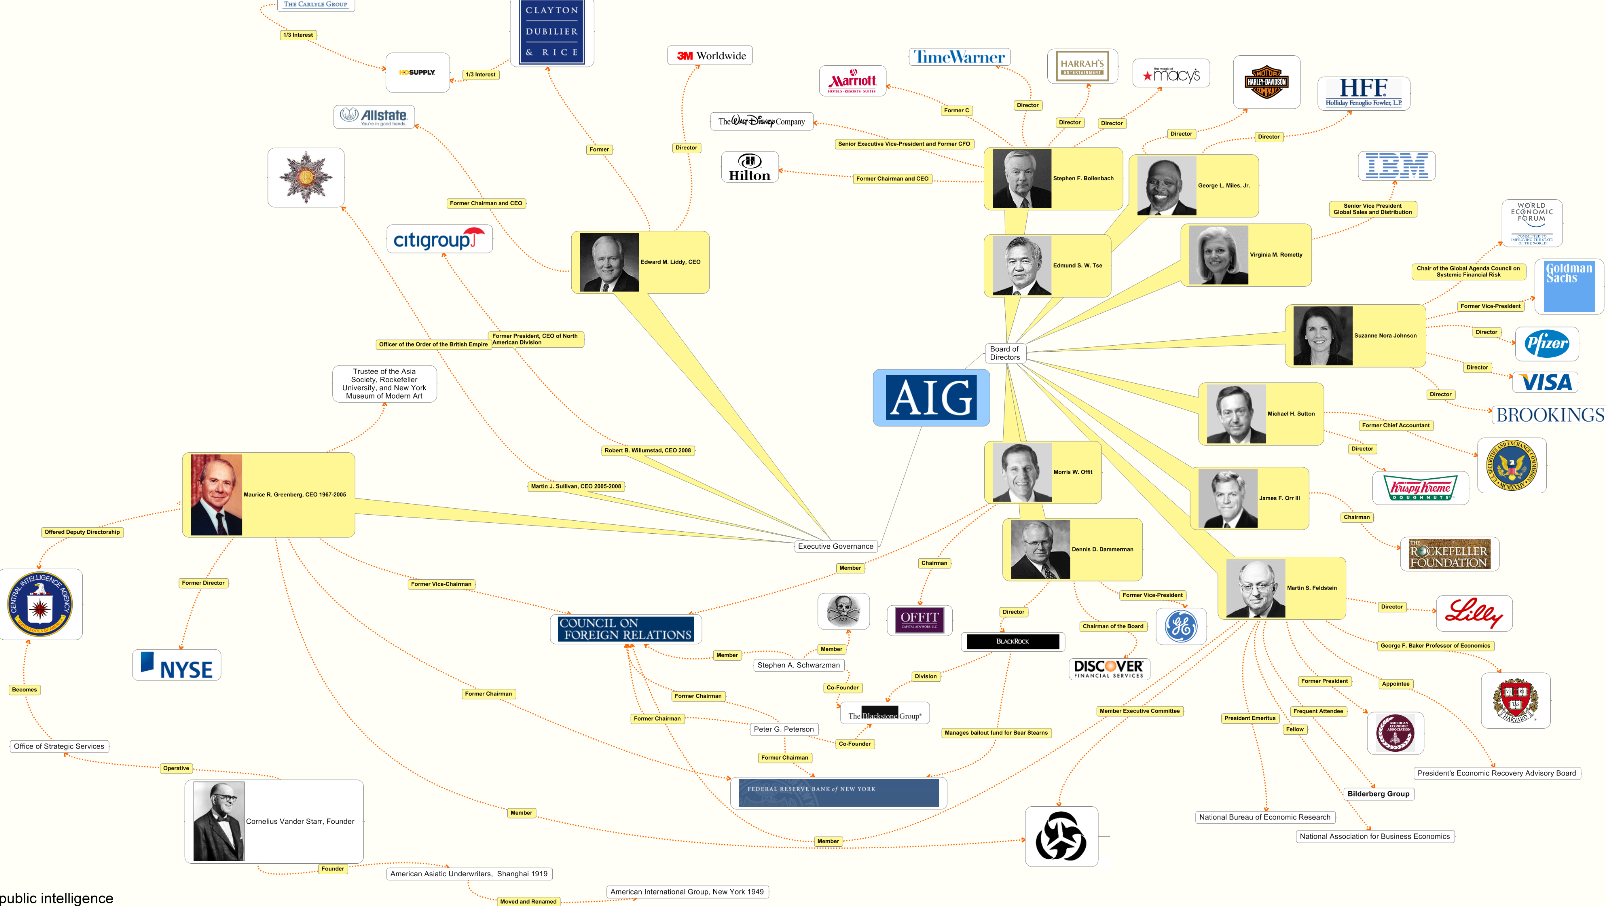 Aig blame for the bailout